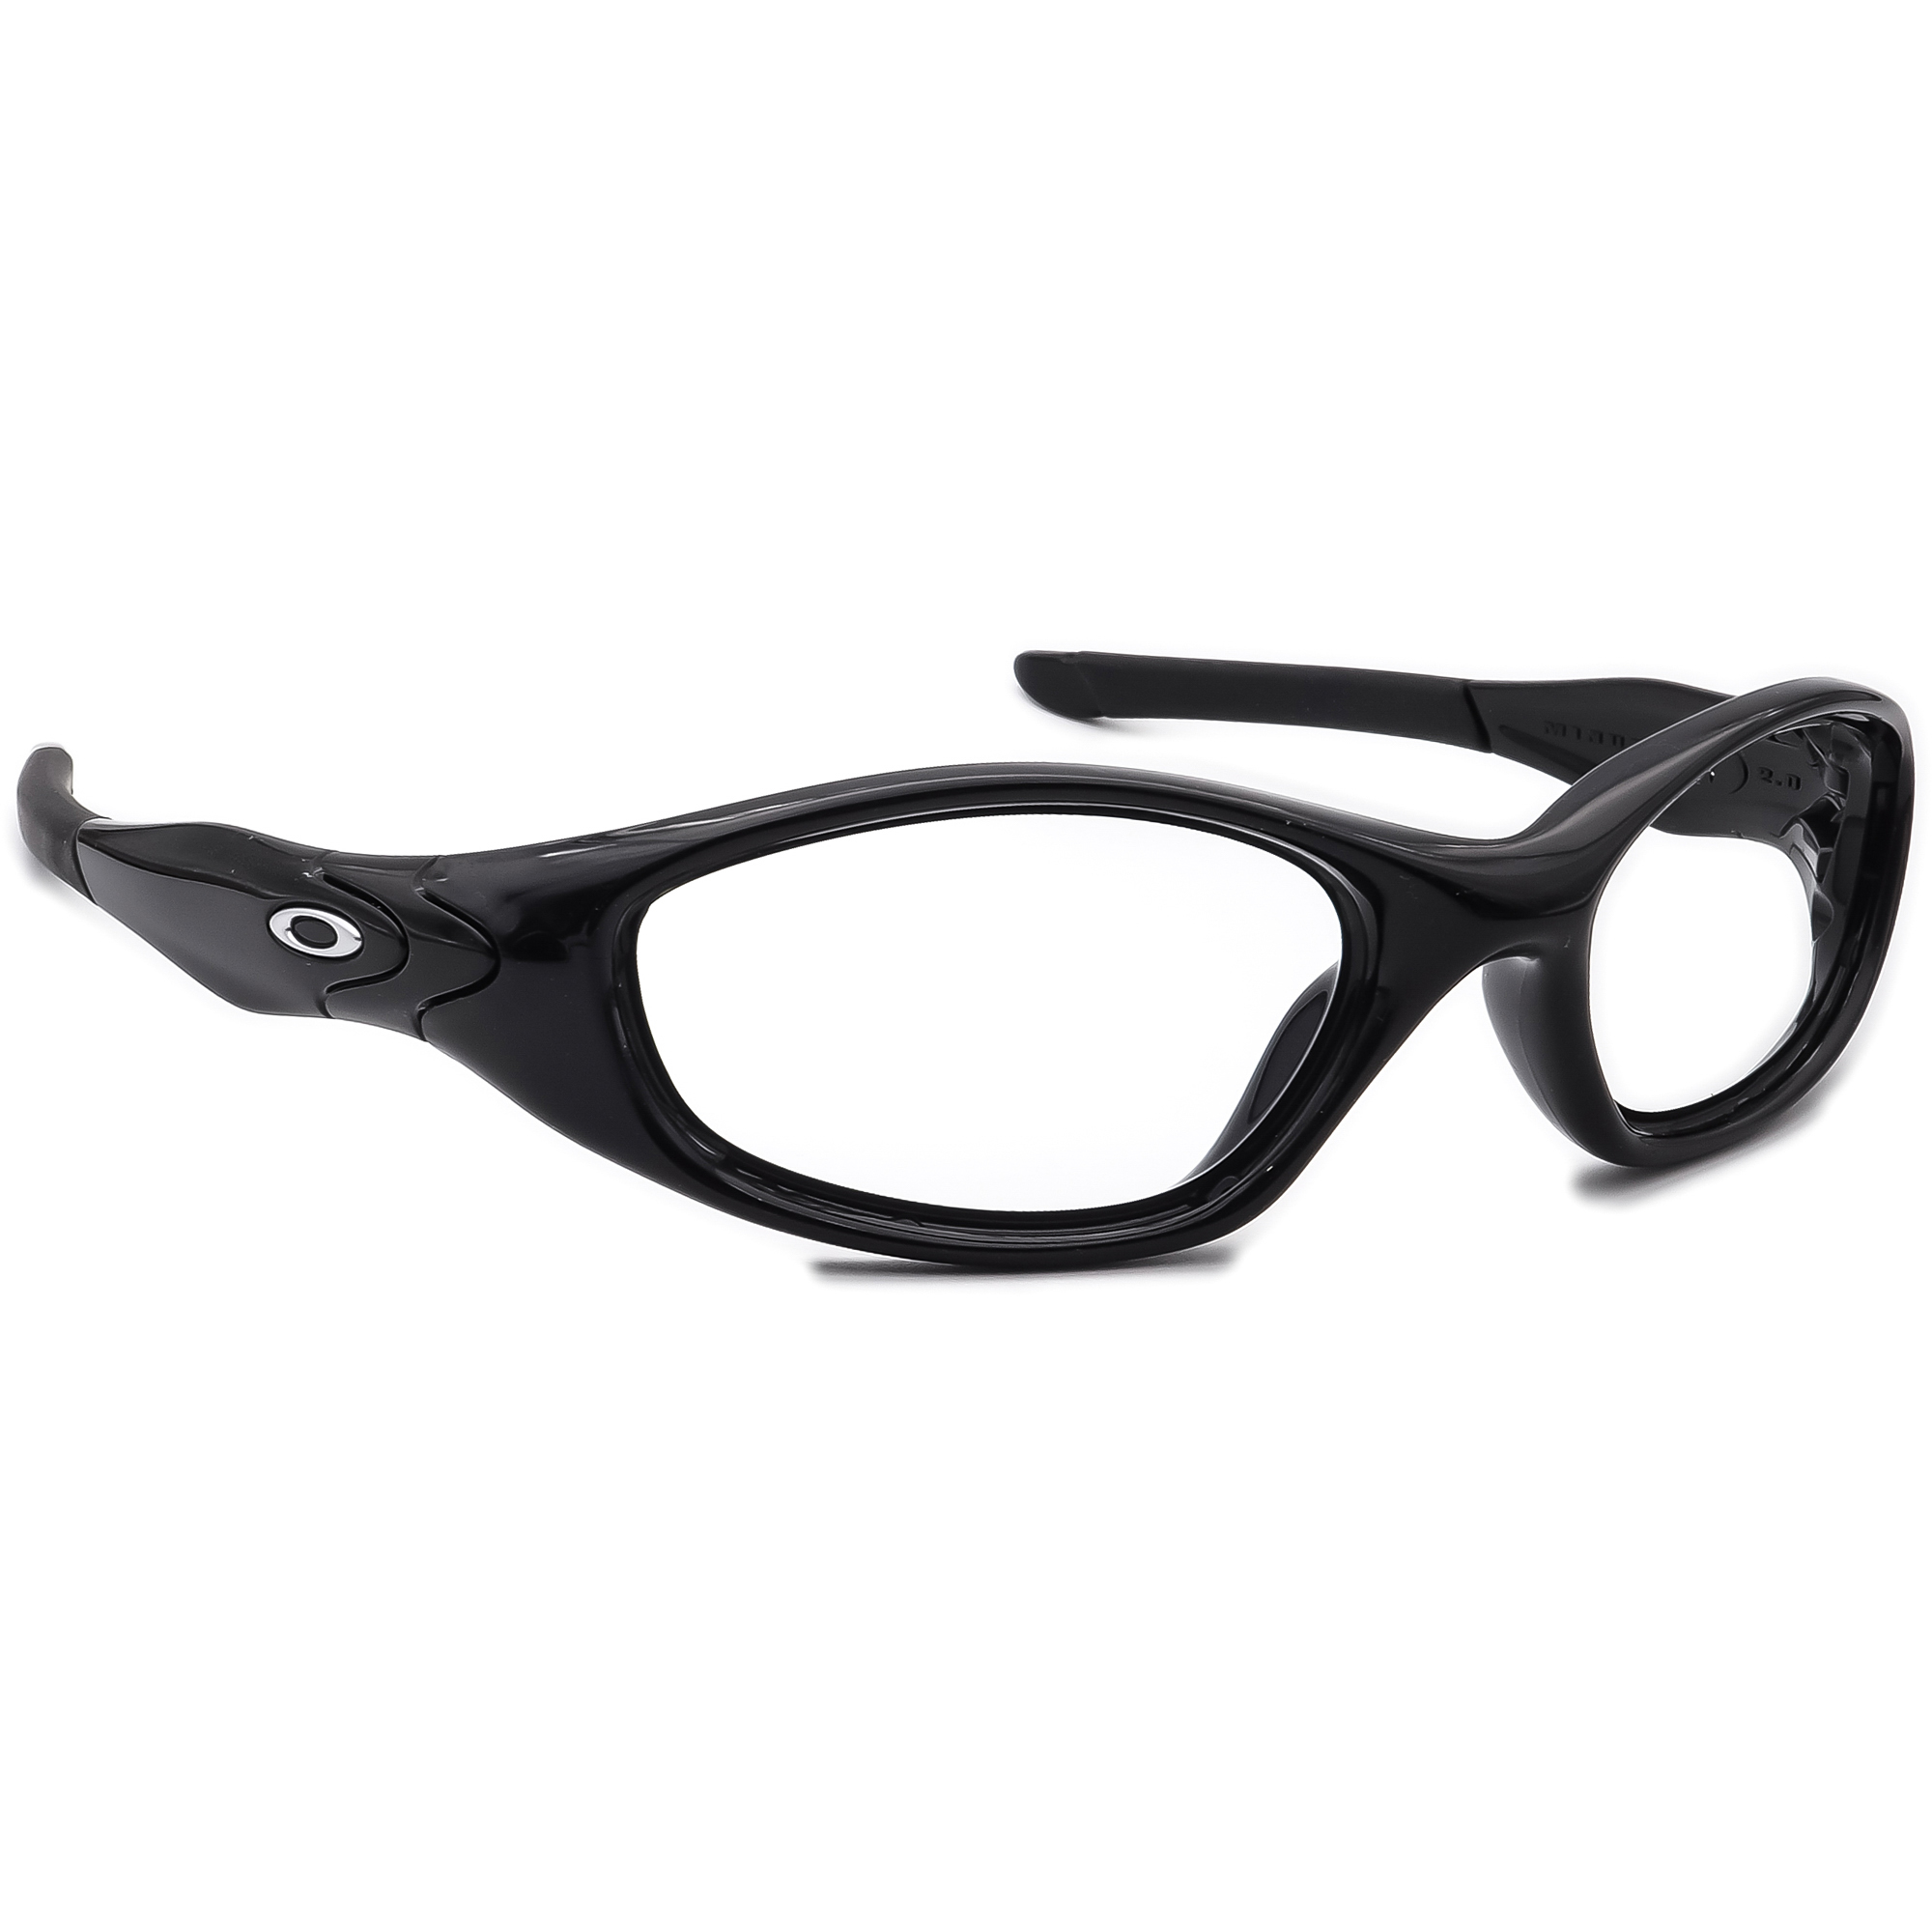 Oakley 04-515 Minute 2.0  Sunglasses Frame Only